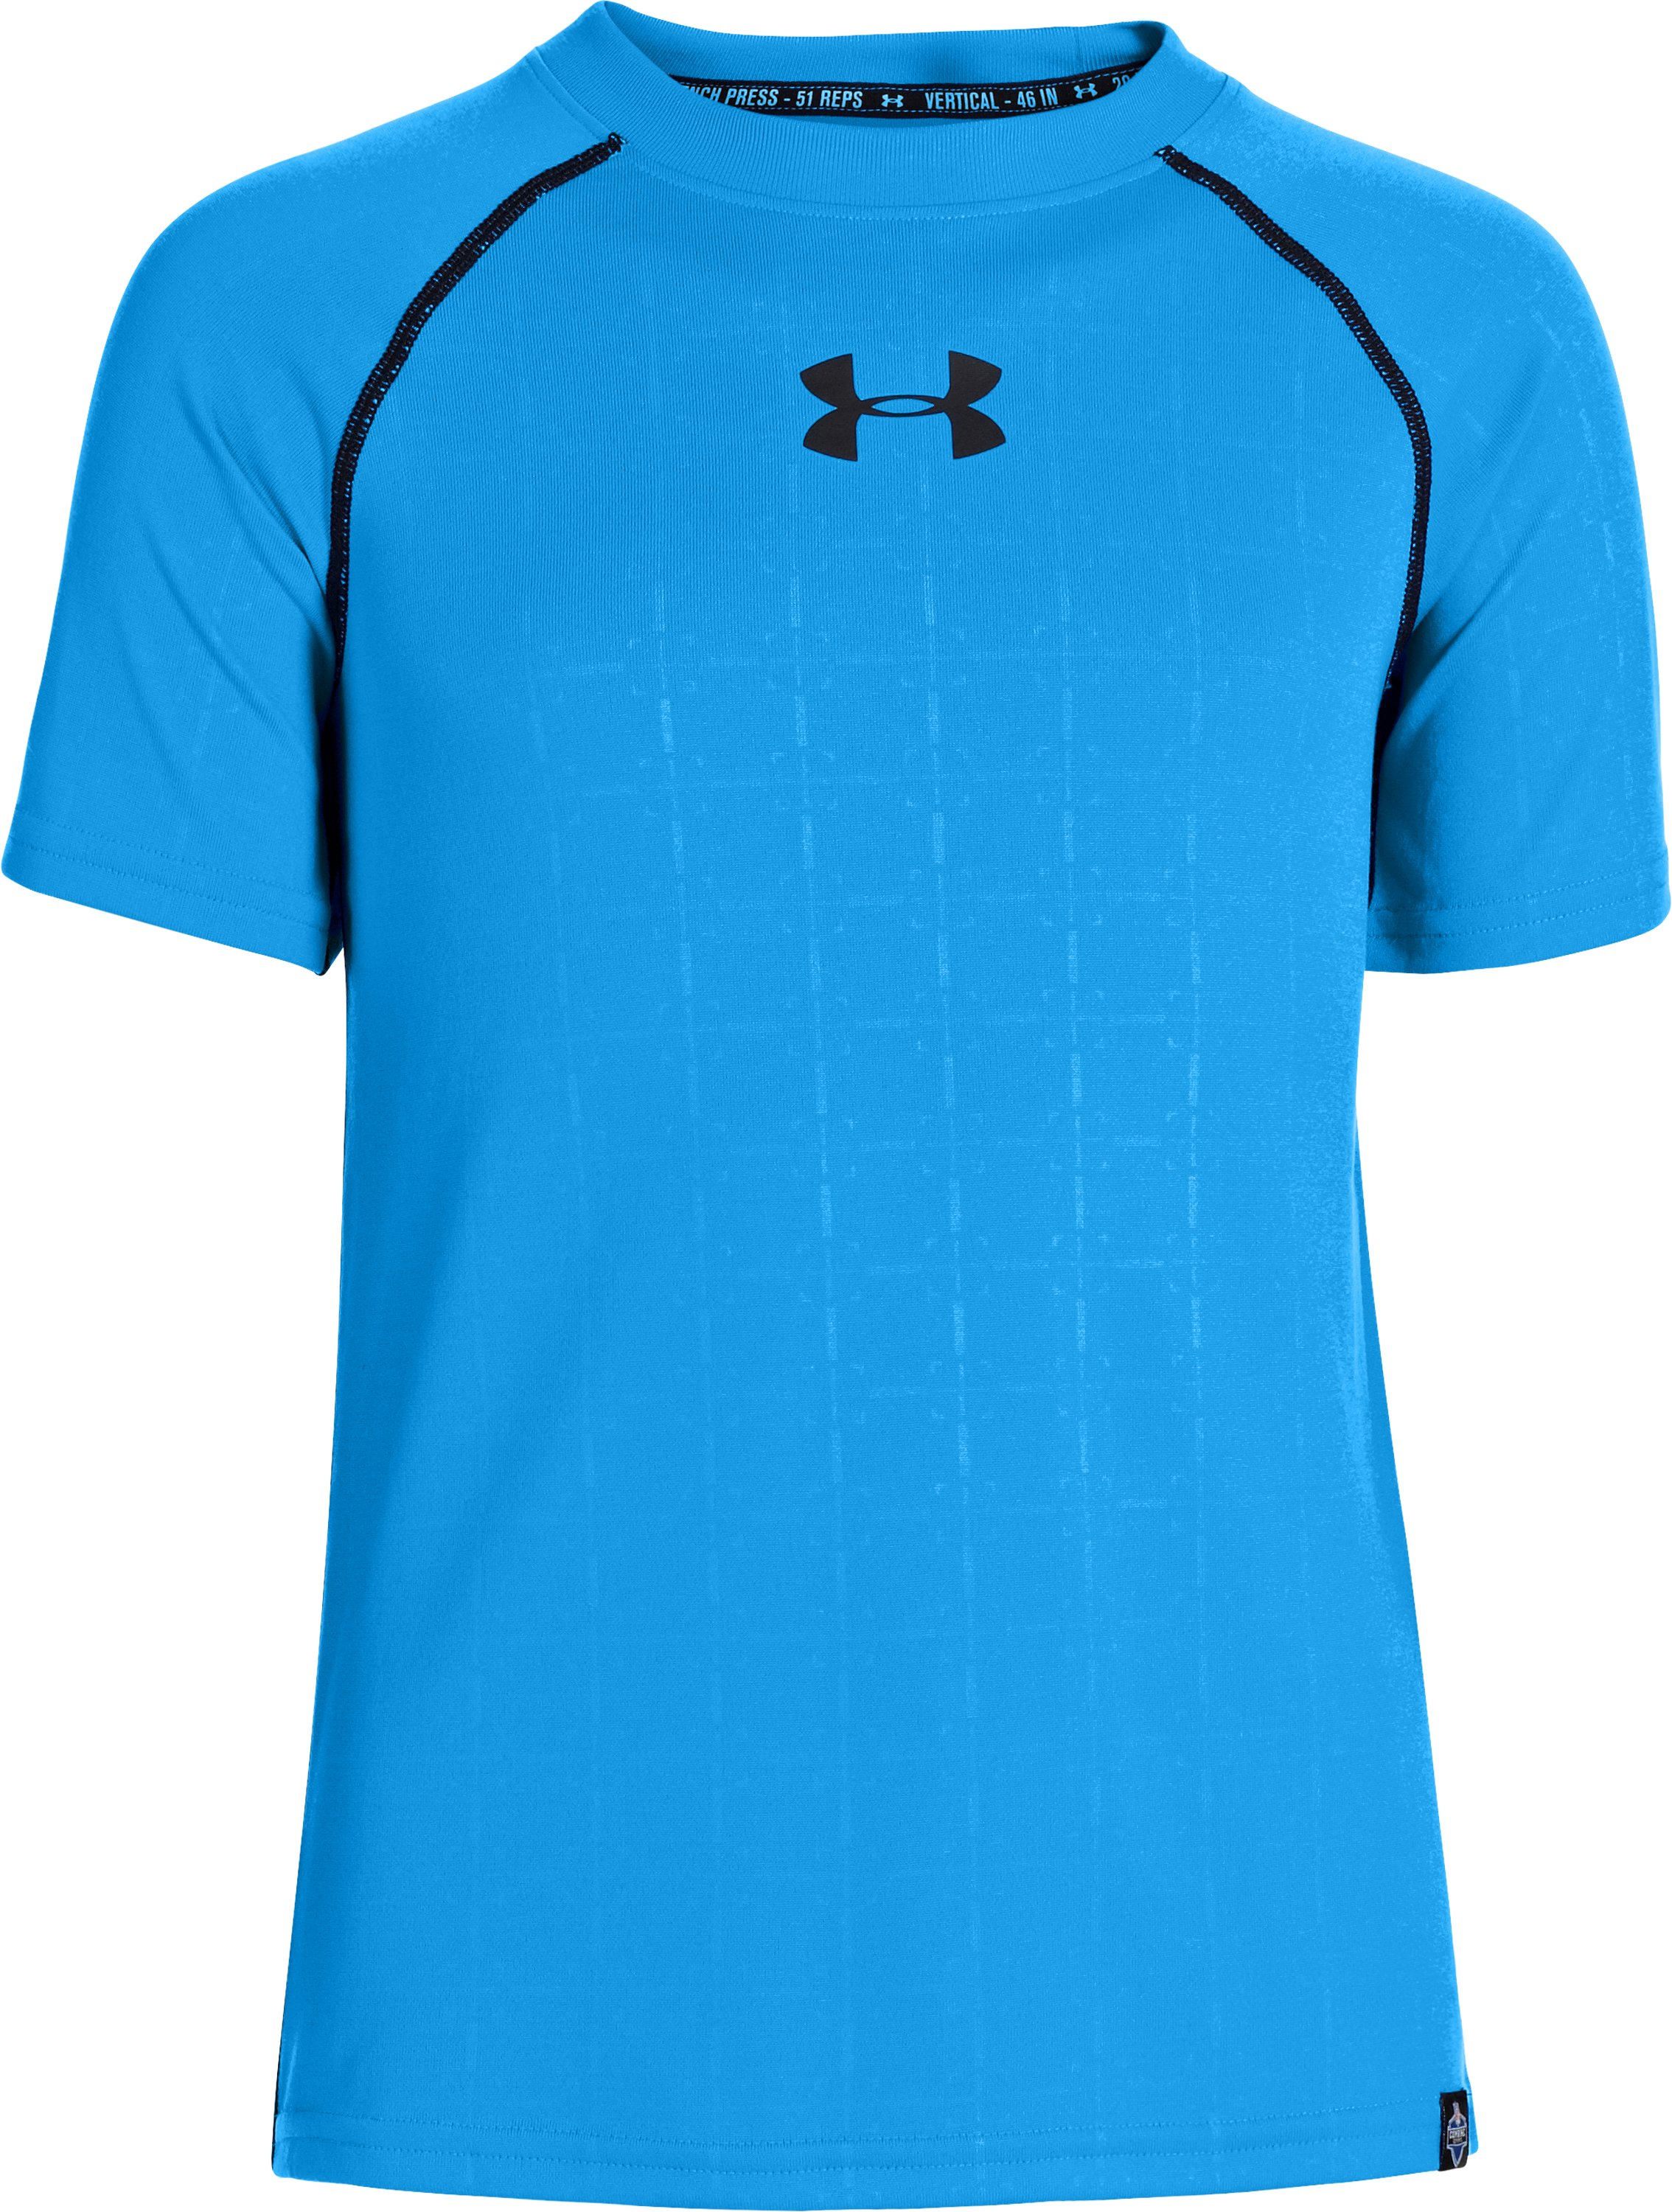 Boys' NFL Combine Authentic Training T-Shirt, ELECTRIC BLUE, zoomed image